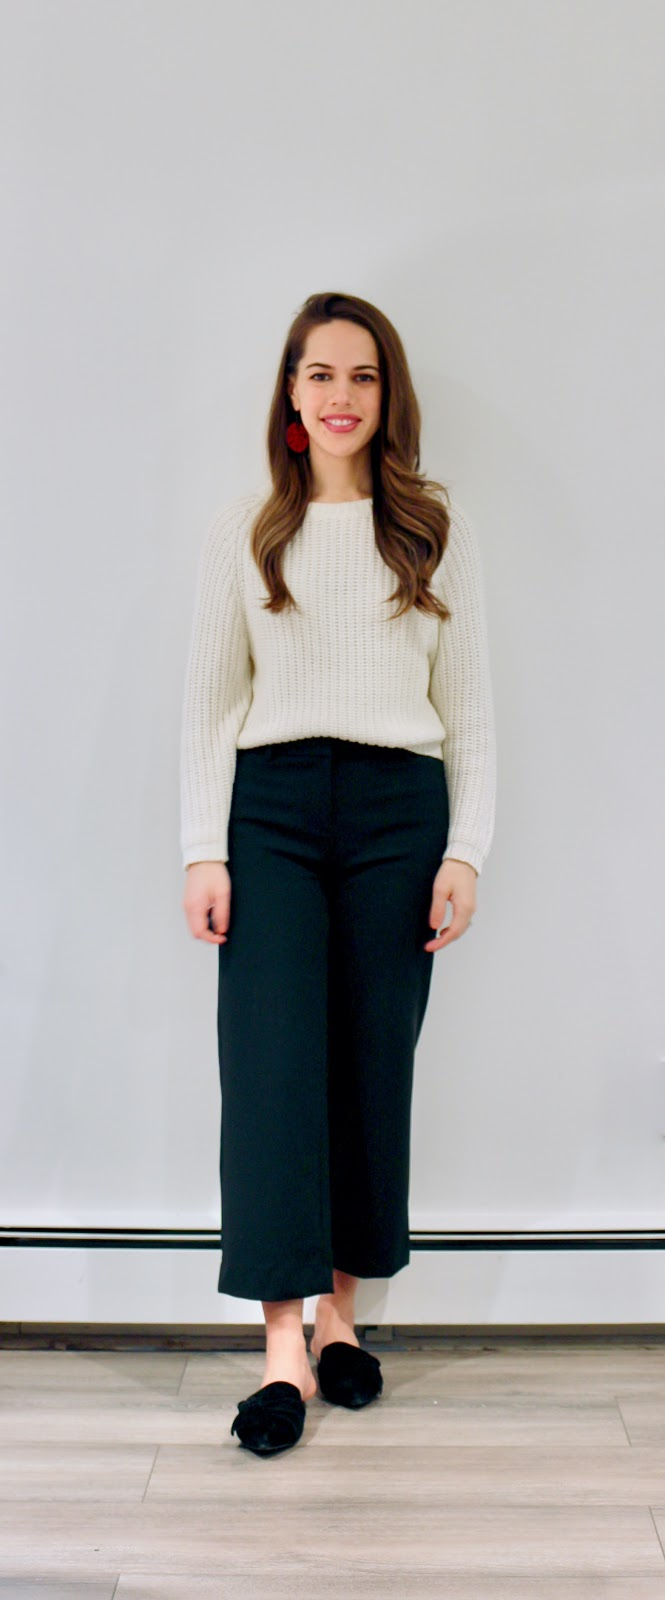 Jules in Flats - J.Crew Peyton Wide Leg Cropped Pants (Business Casual Winter Workwear on a Budget)